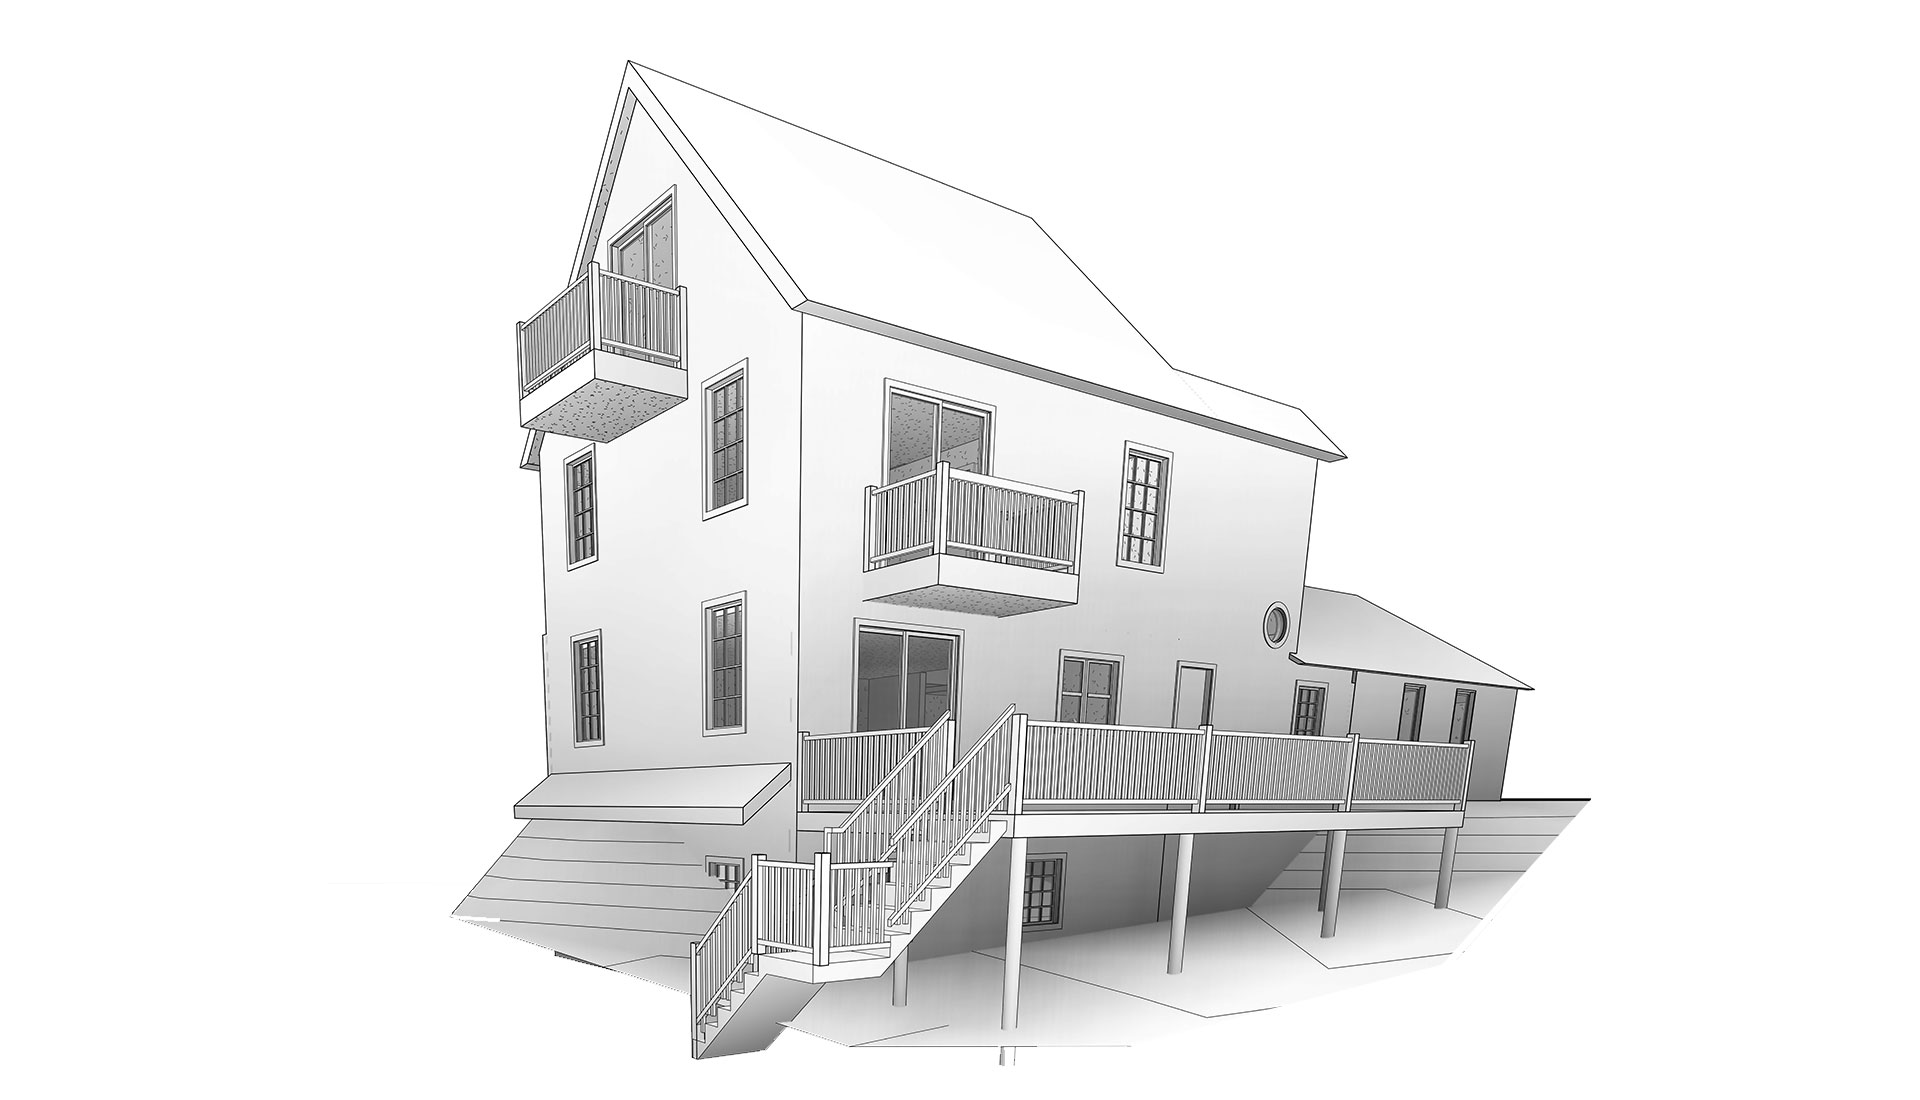 External-View_3D-Revit-Model-of-Residential-Project-by-United-BIM